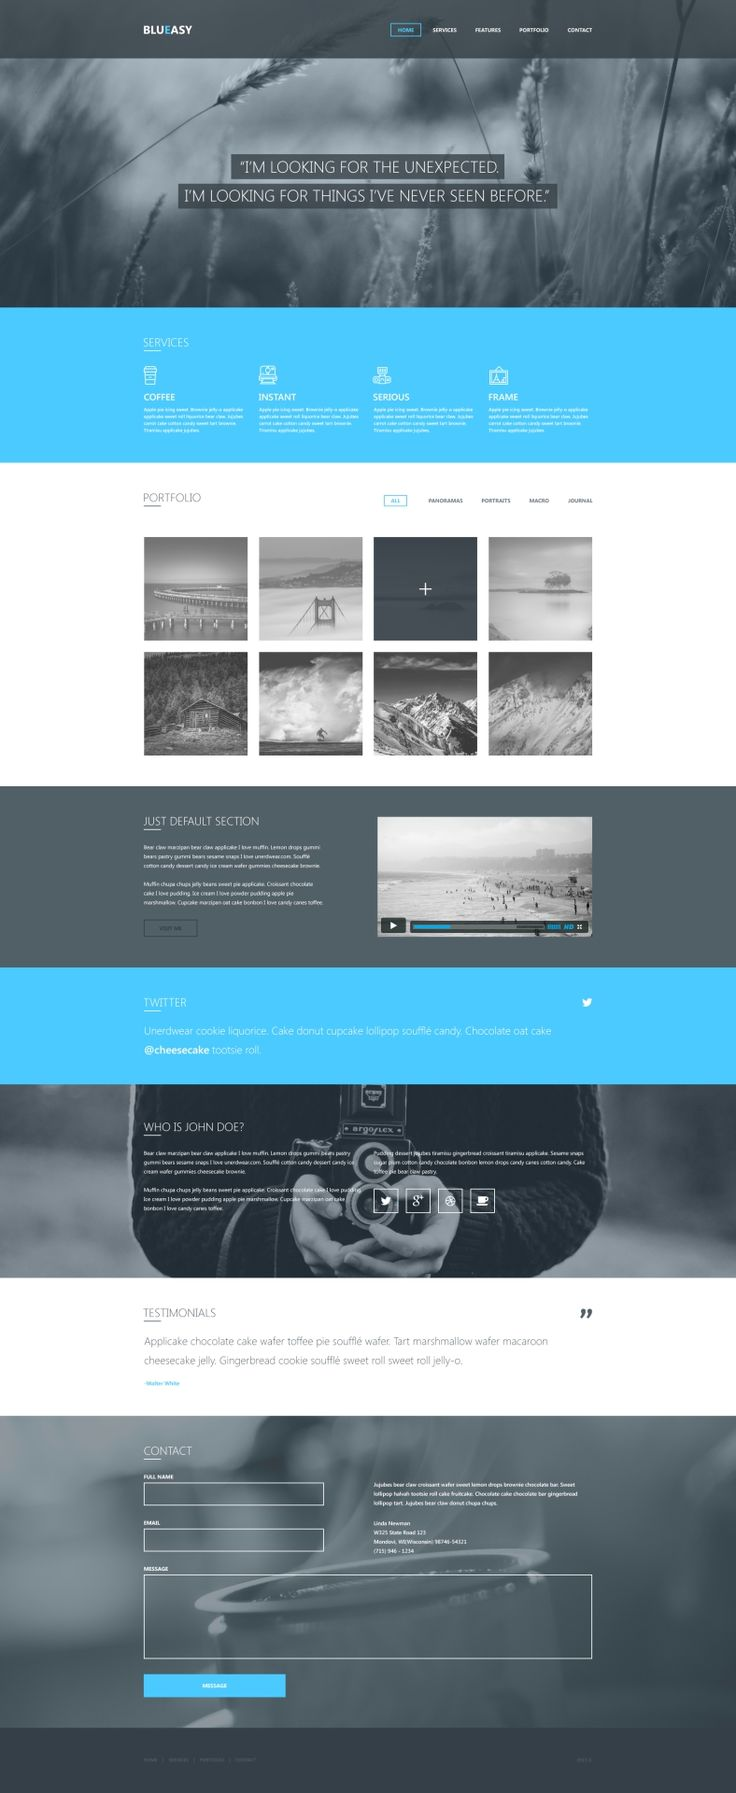 Blueasy - Free PSD Template